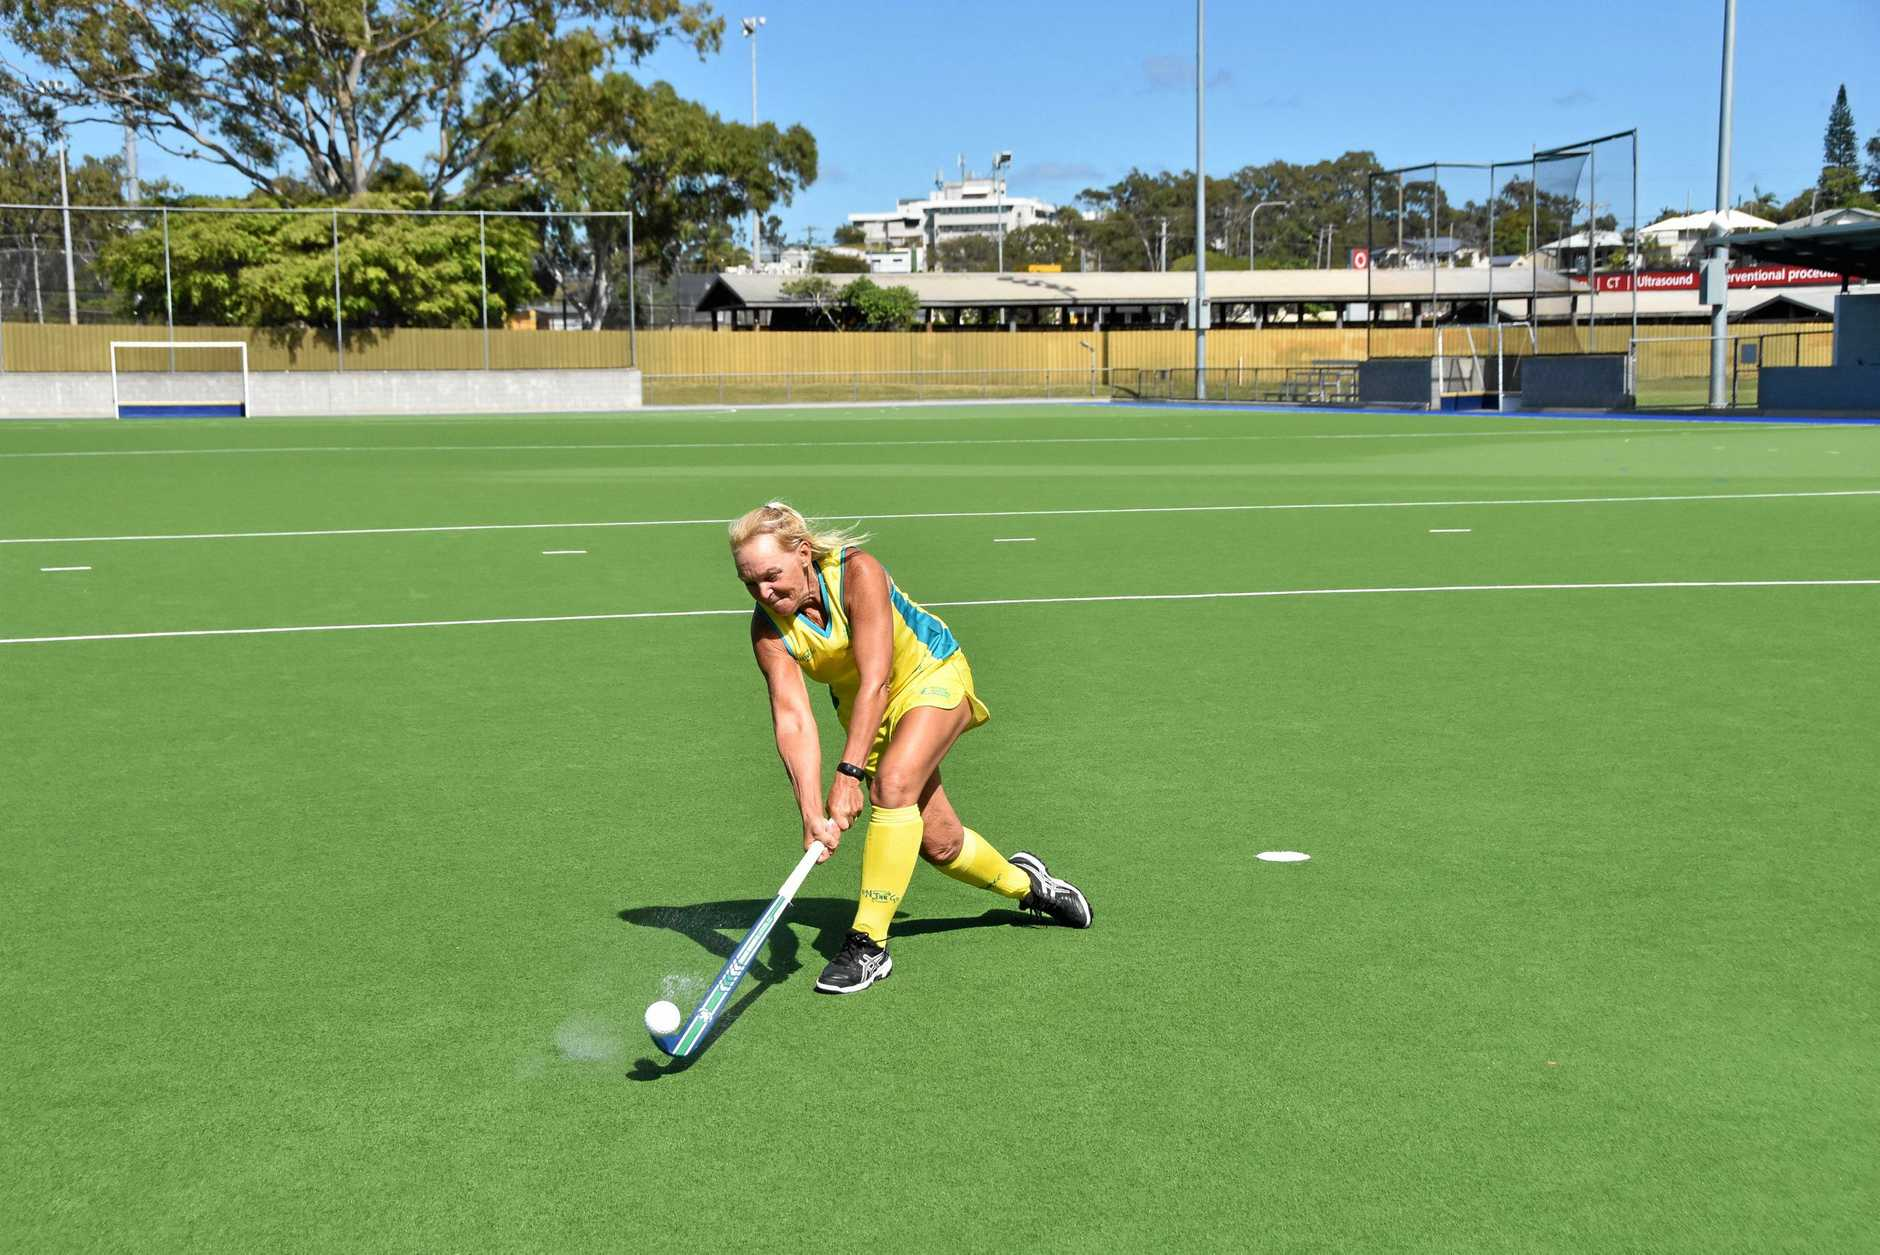 Terri Read will represent Australia Over-55s at the Hockey Australia Masters 2019 Trans Tasman Challenge on the Gold Coast.